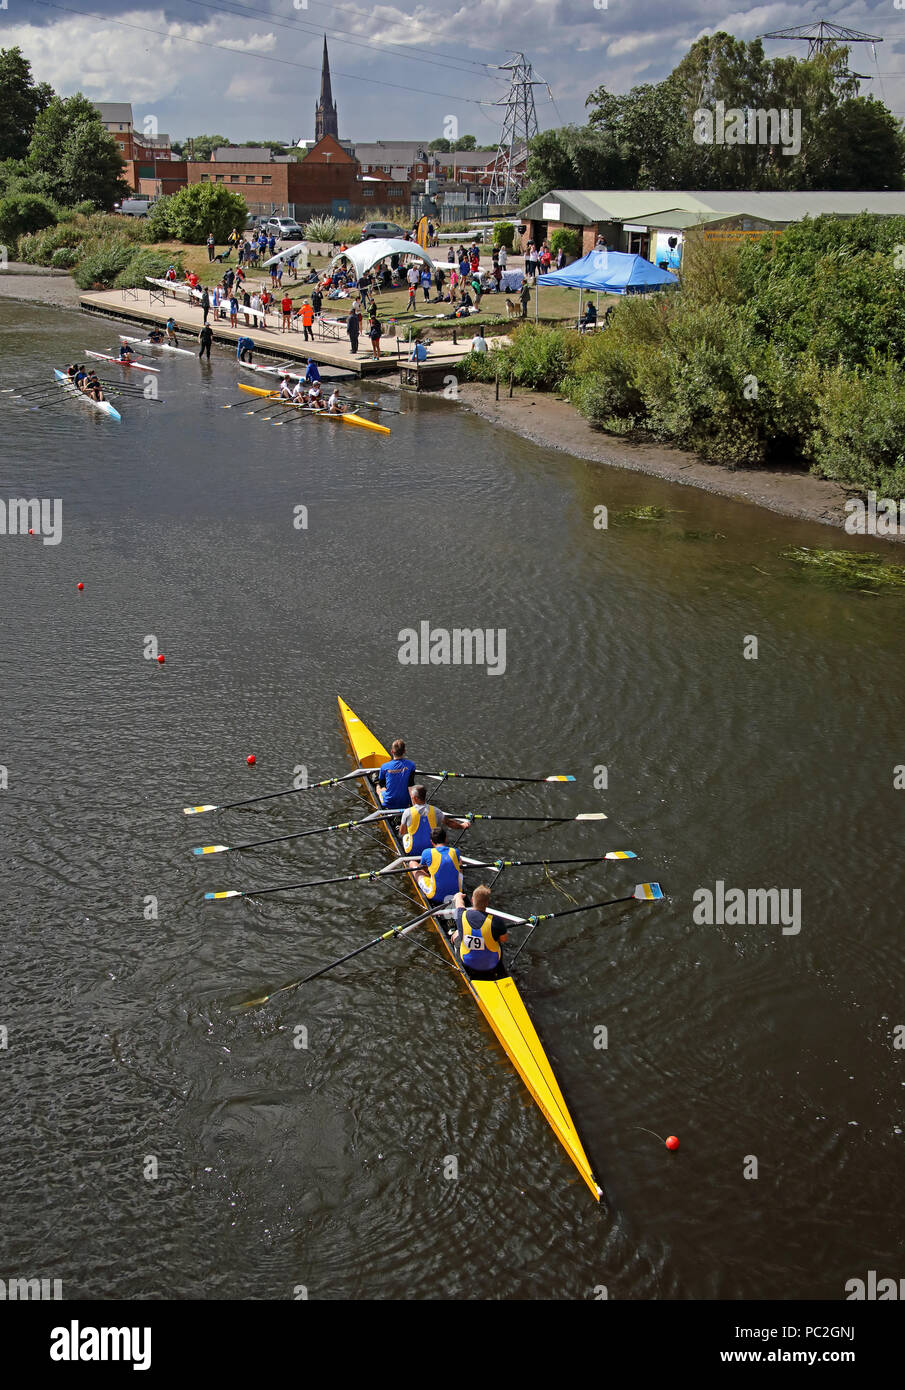 Mens quad team at Warrington Rowing Club 2018 Summer regatta, Howley lane, Mersey River, Cheshire, North West England, UK Stock Photo